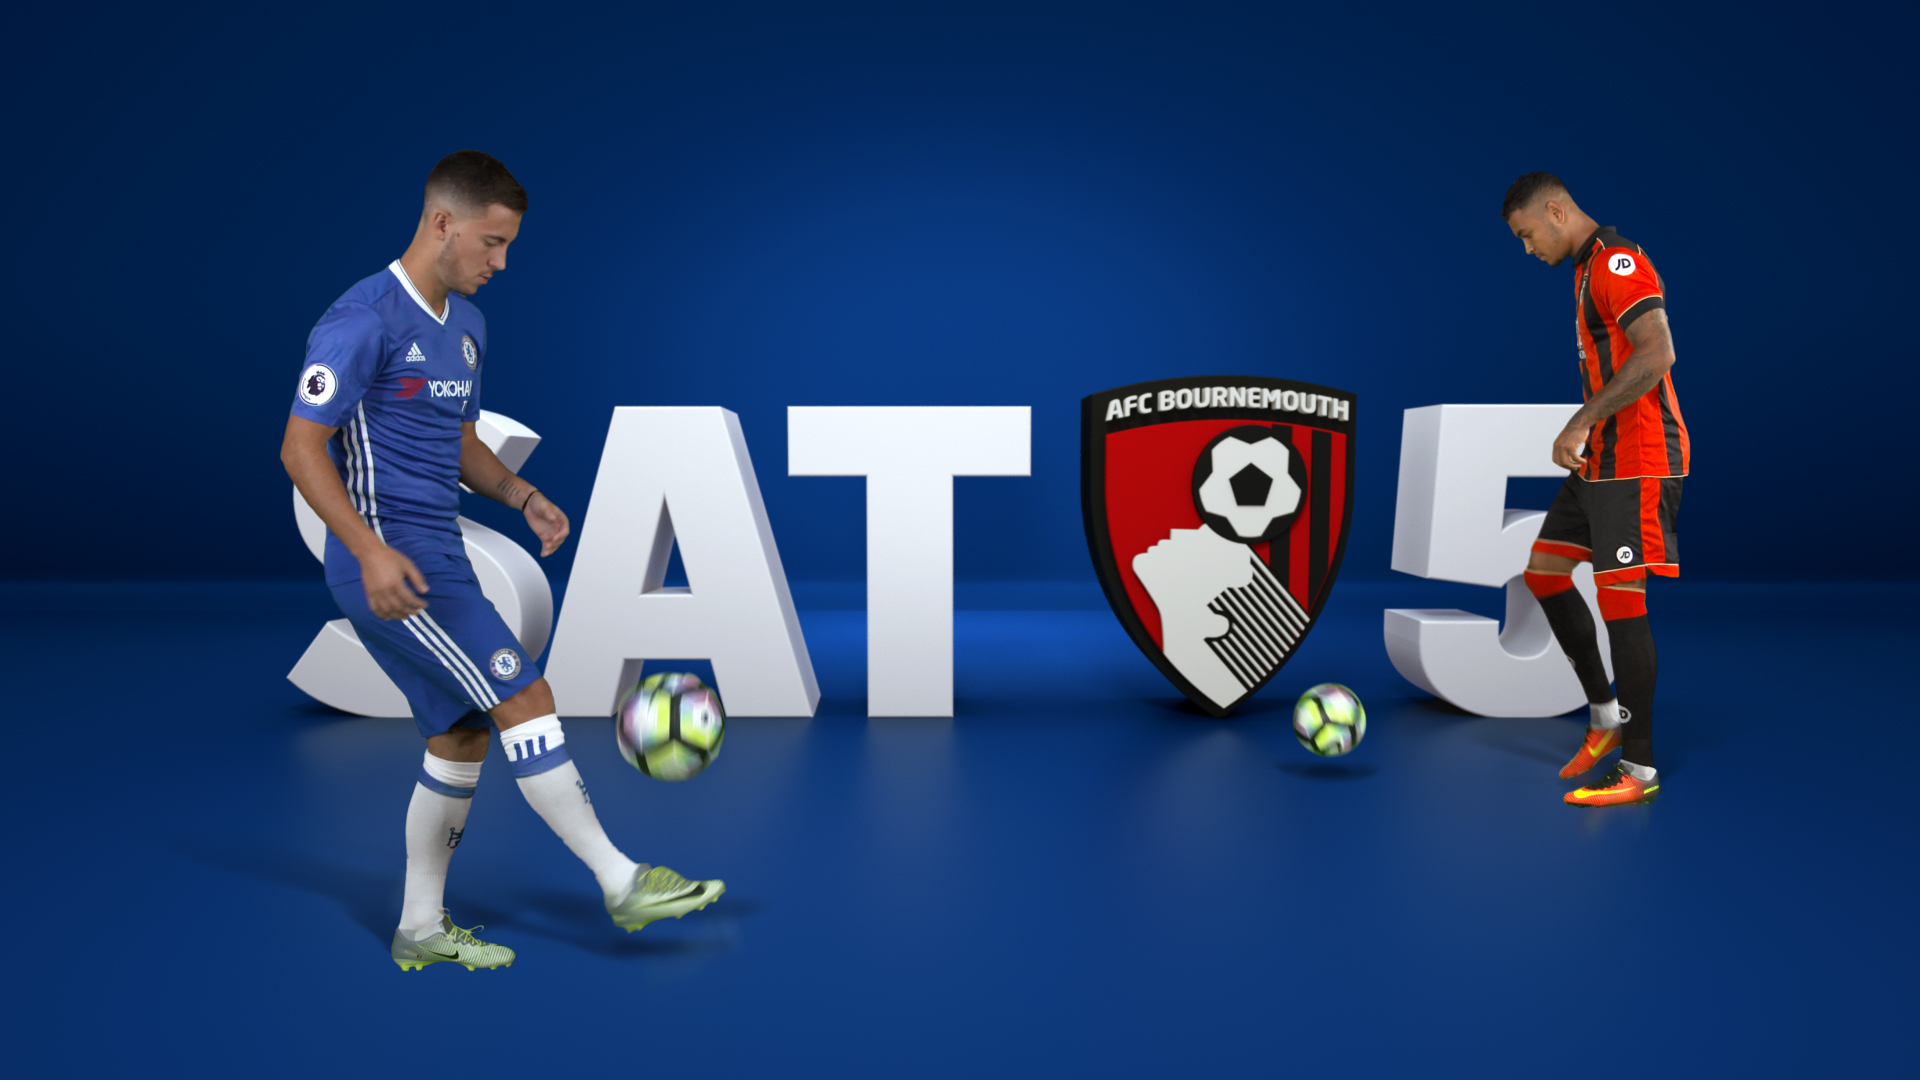 Bournemouth vs Chelsea graphics 1